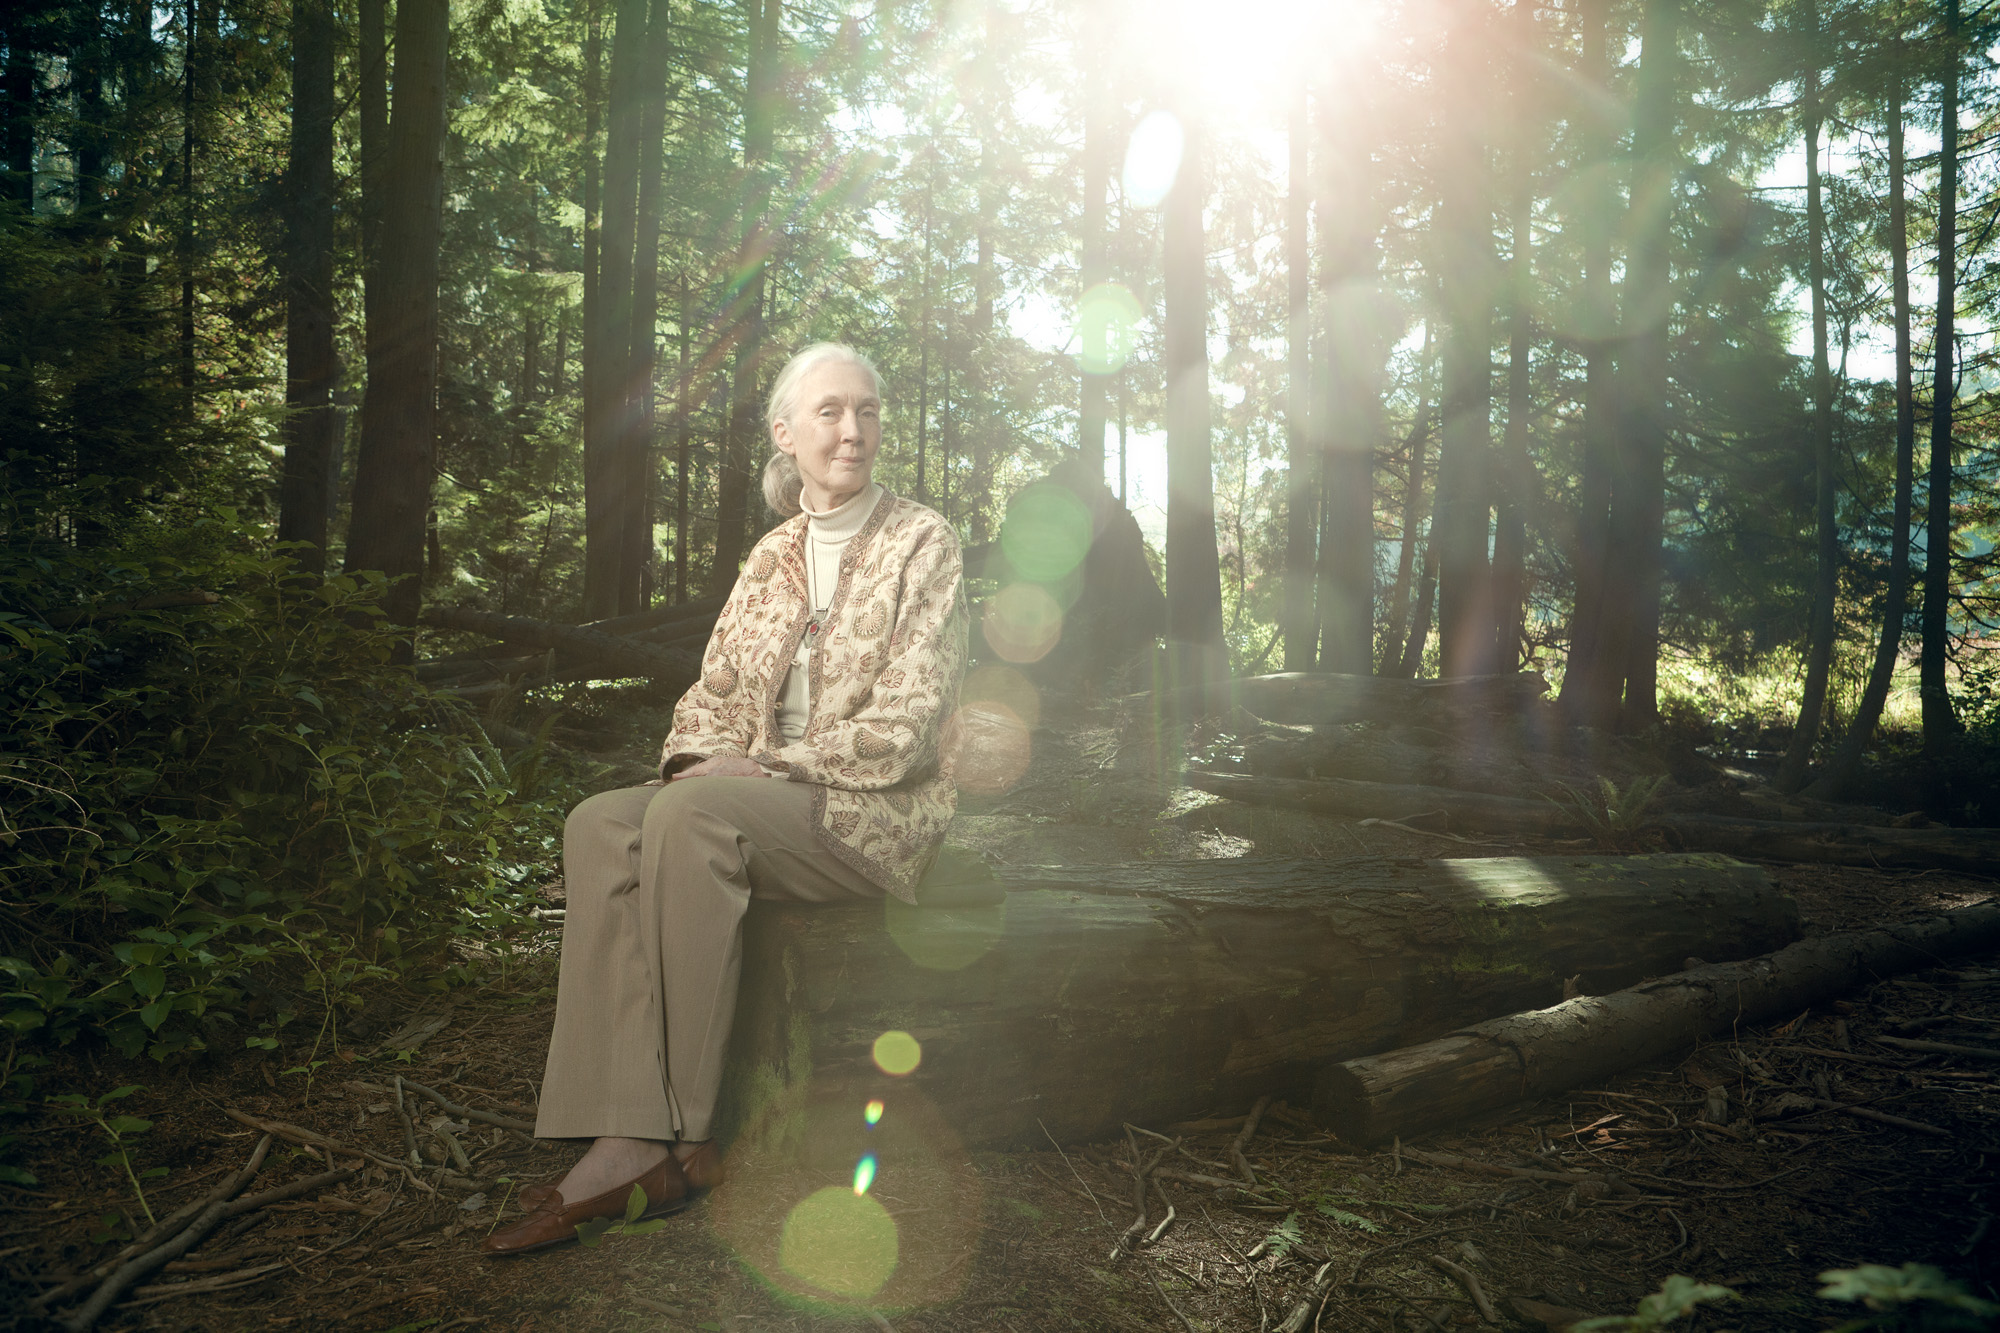 cc2011061 - Jane Goodall for AARP Magazine